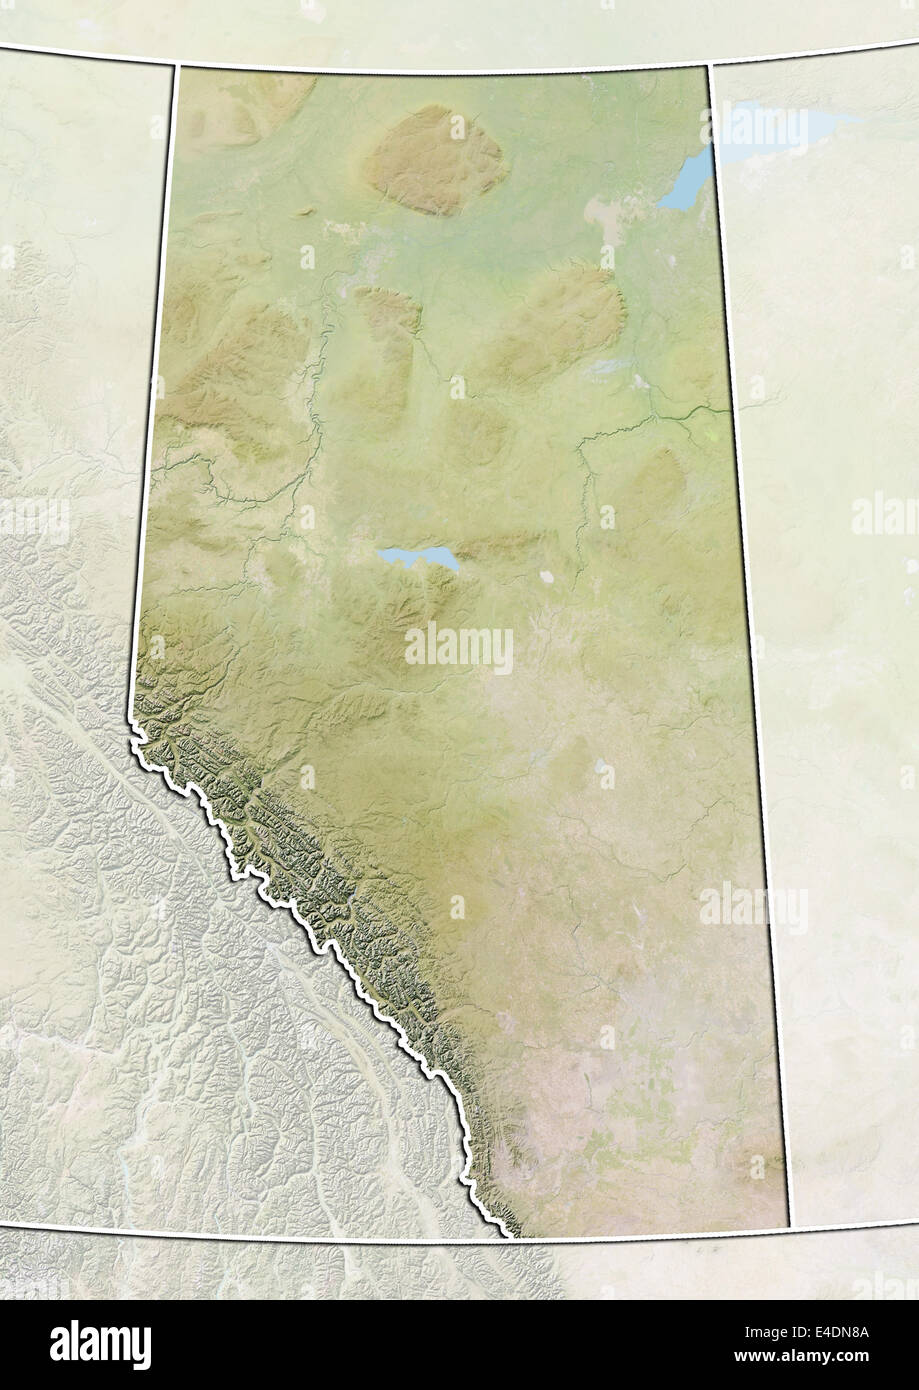 Province of Alberta, Canada, Relief Map Stock Photo: 71602170 - Alamy